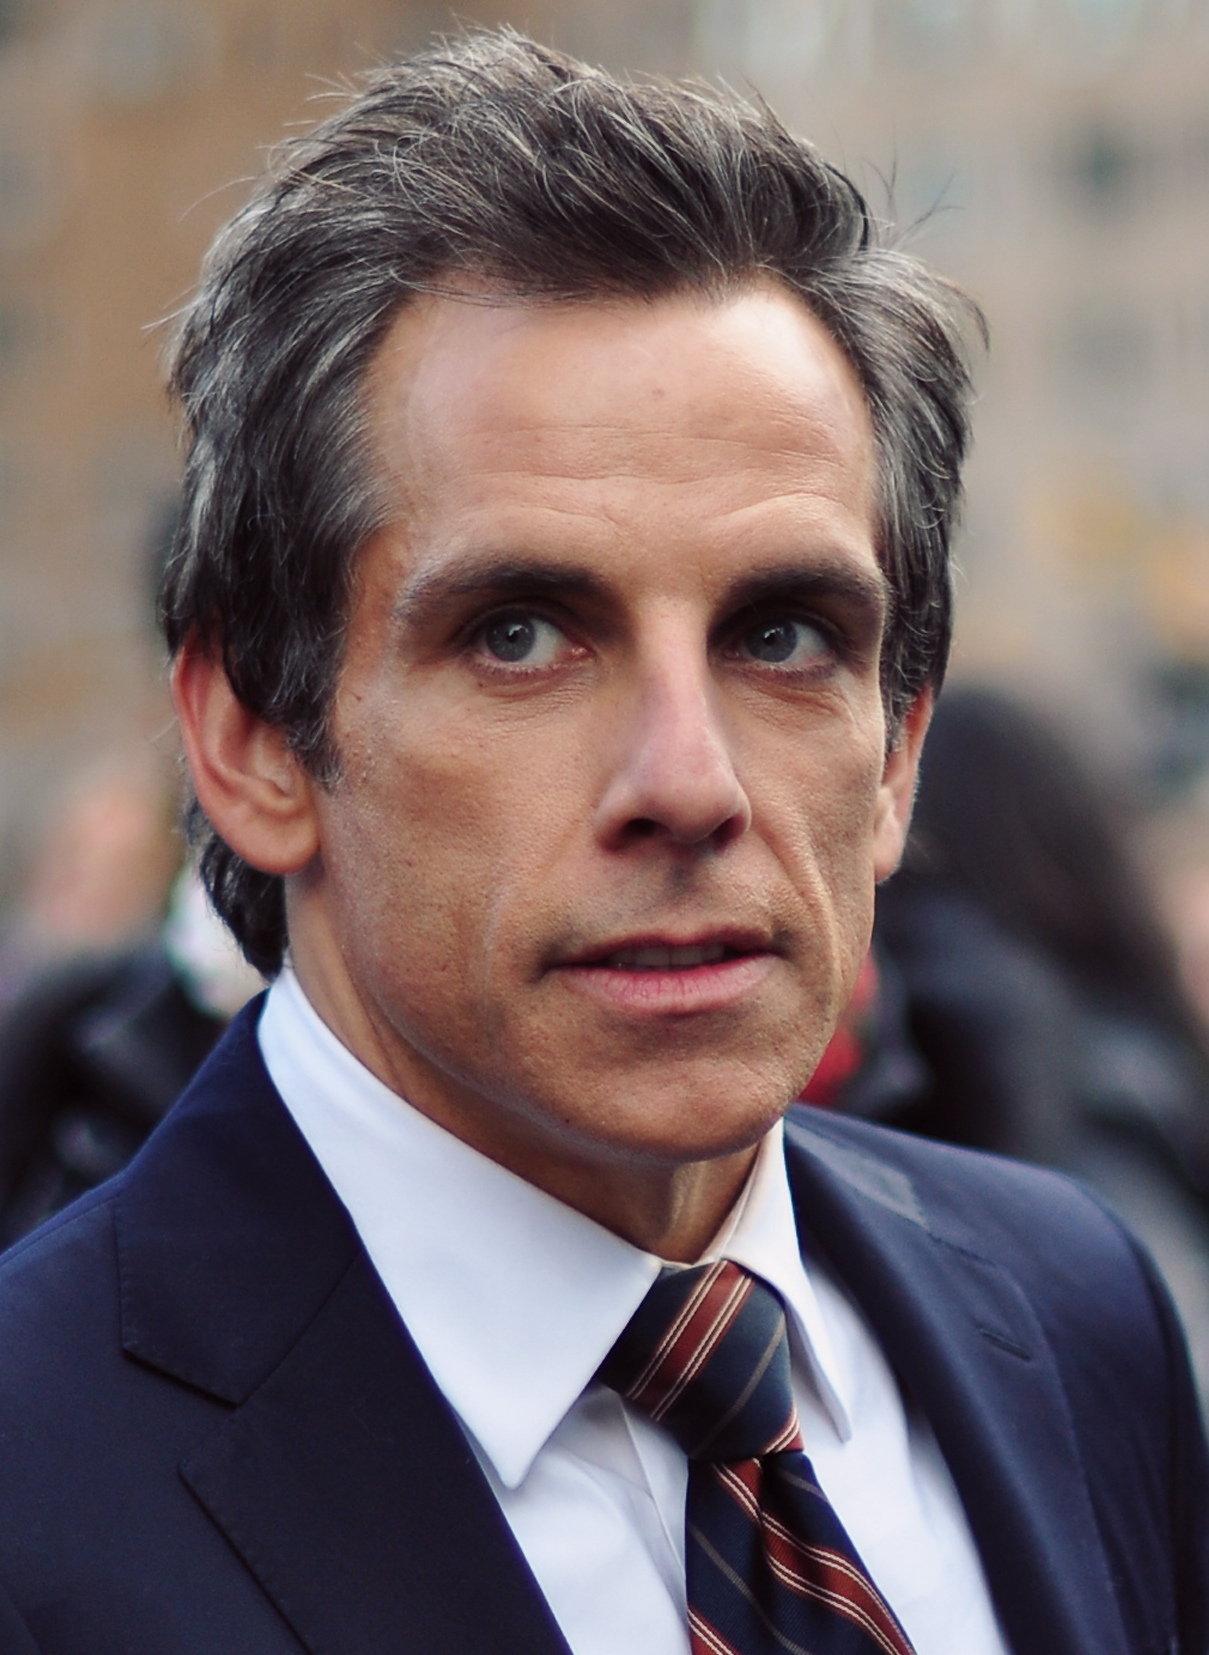 The 51-year old son of father Jerry Stiller and mother Anne Meara, 168 cm tall Ben Stiller in 2017 photo